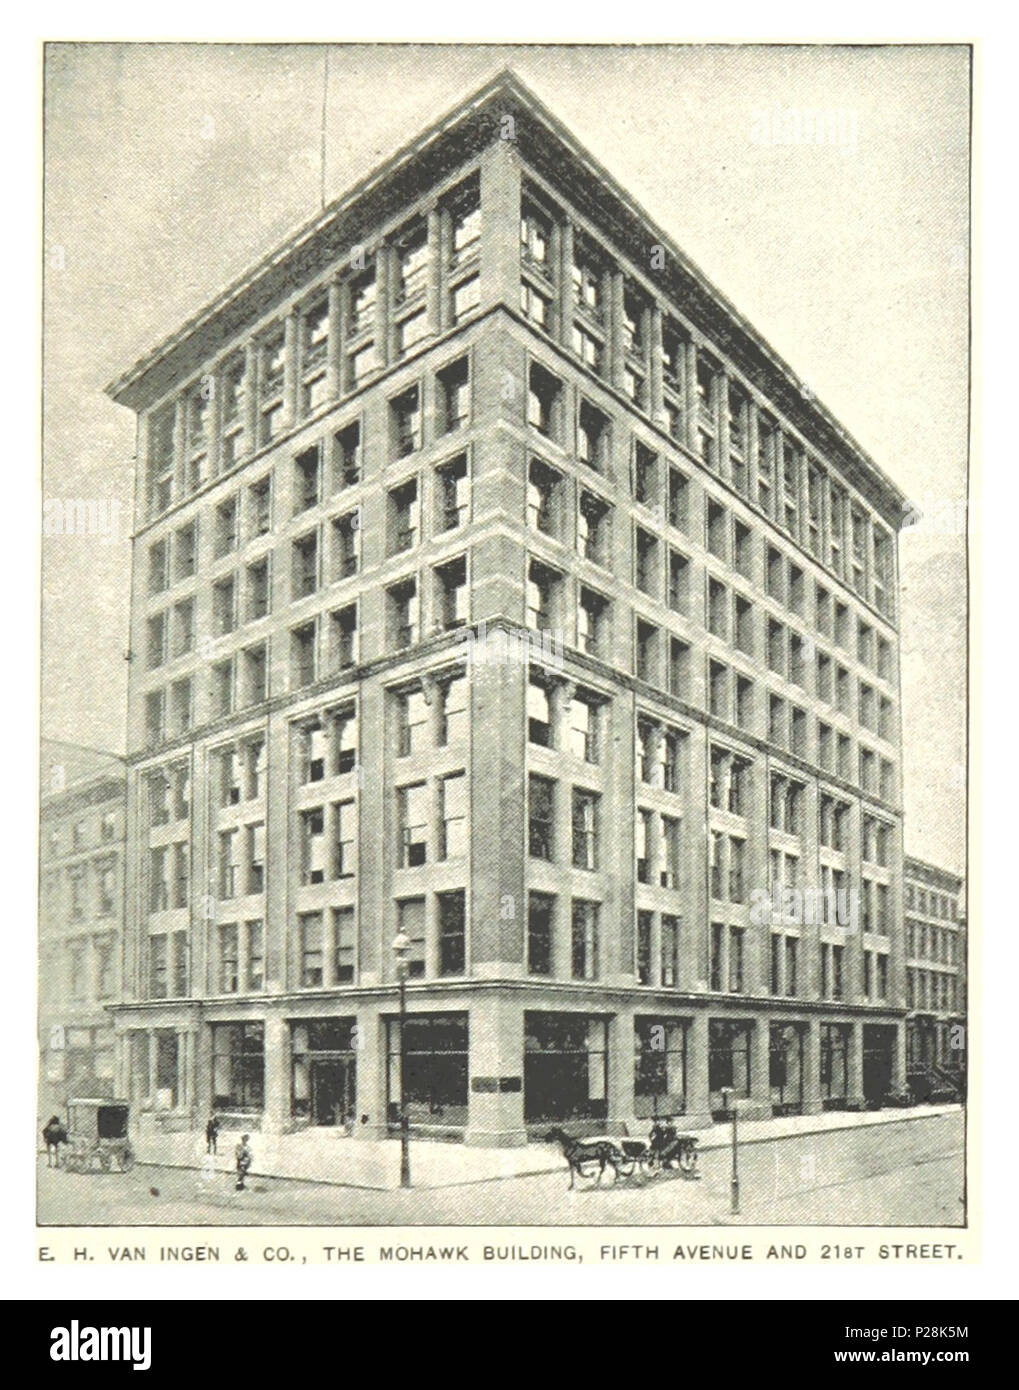 (King1893NYC) pg893 THE MOHAWK BUILDING, FIFTH AVENUE AND 21ST STREET. - Stock Image